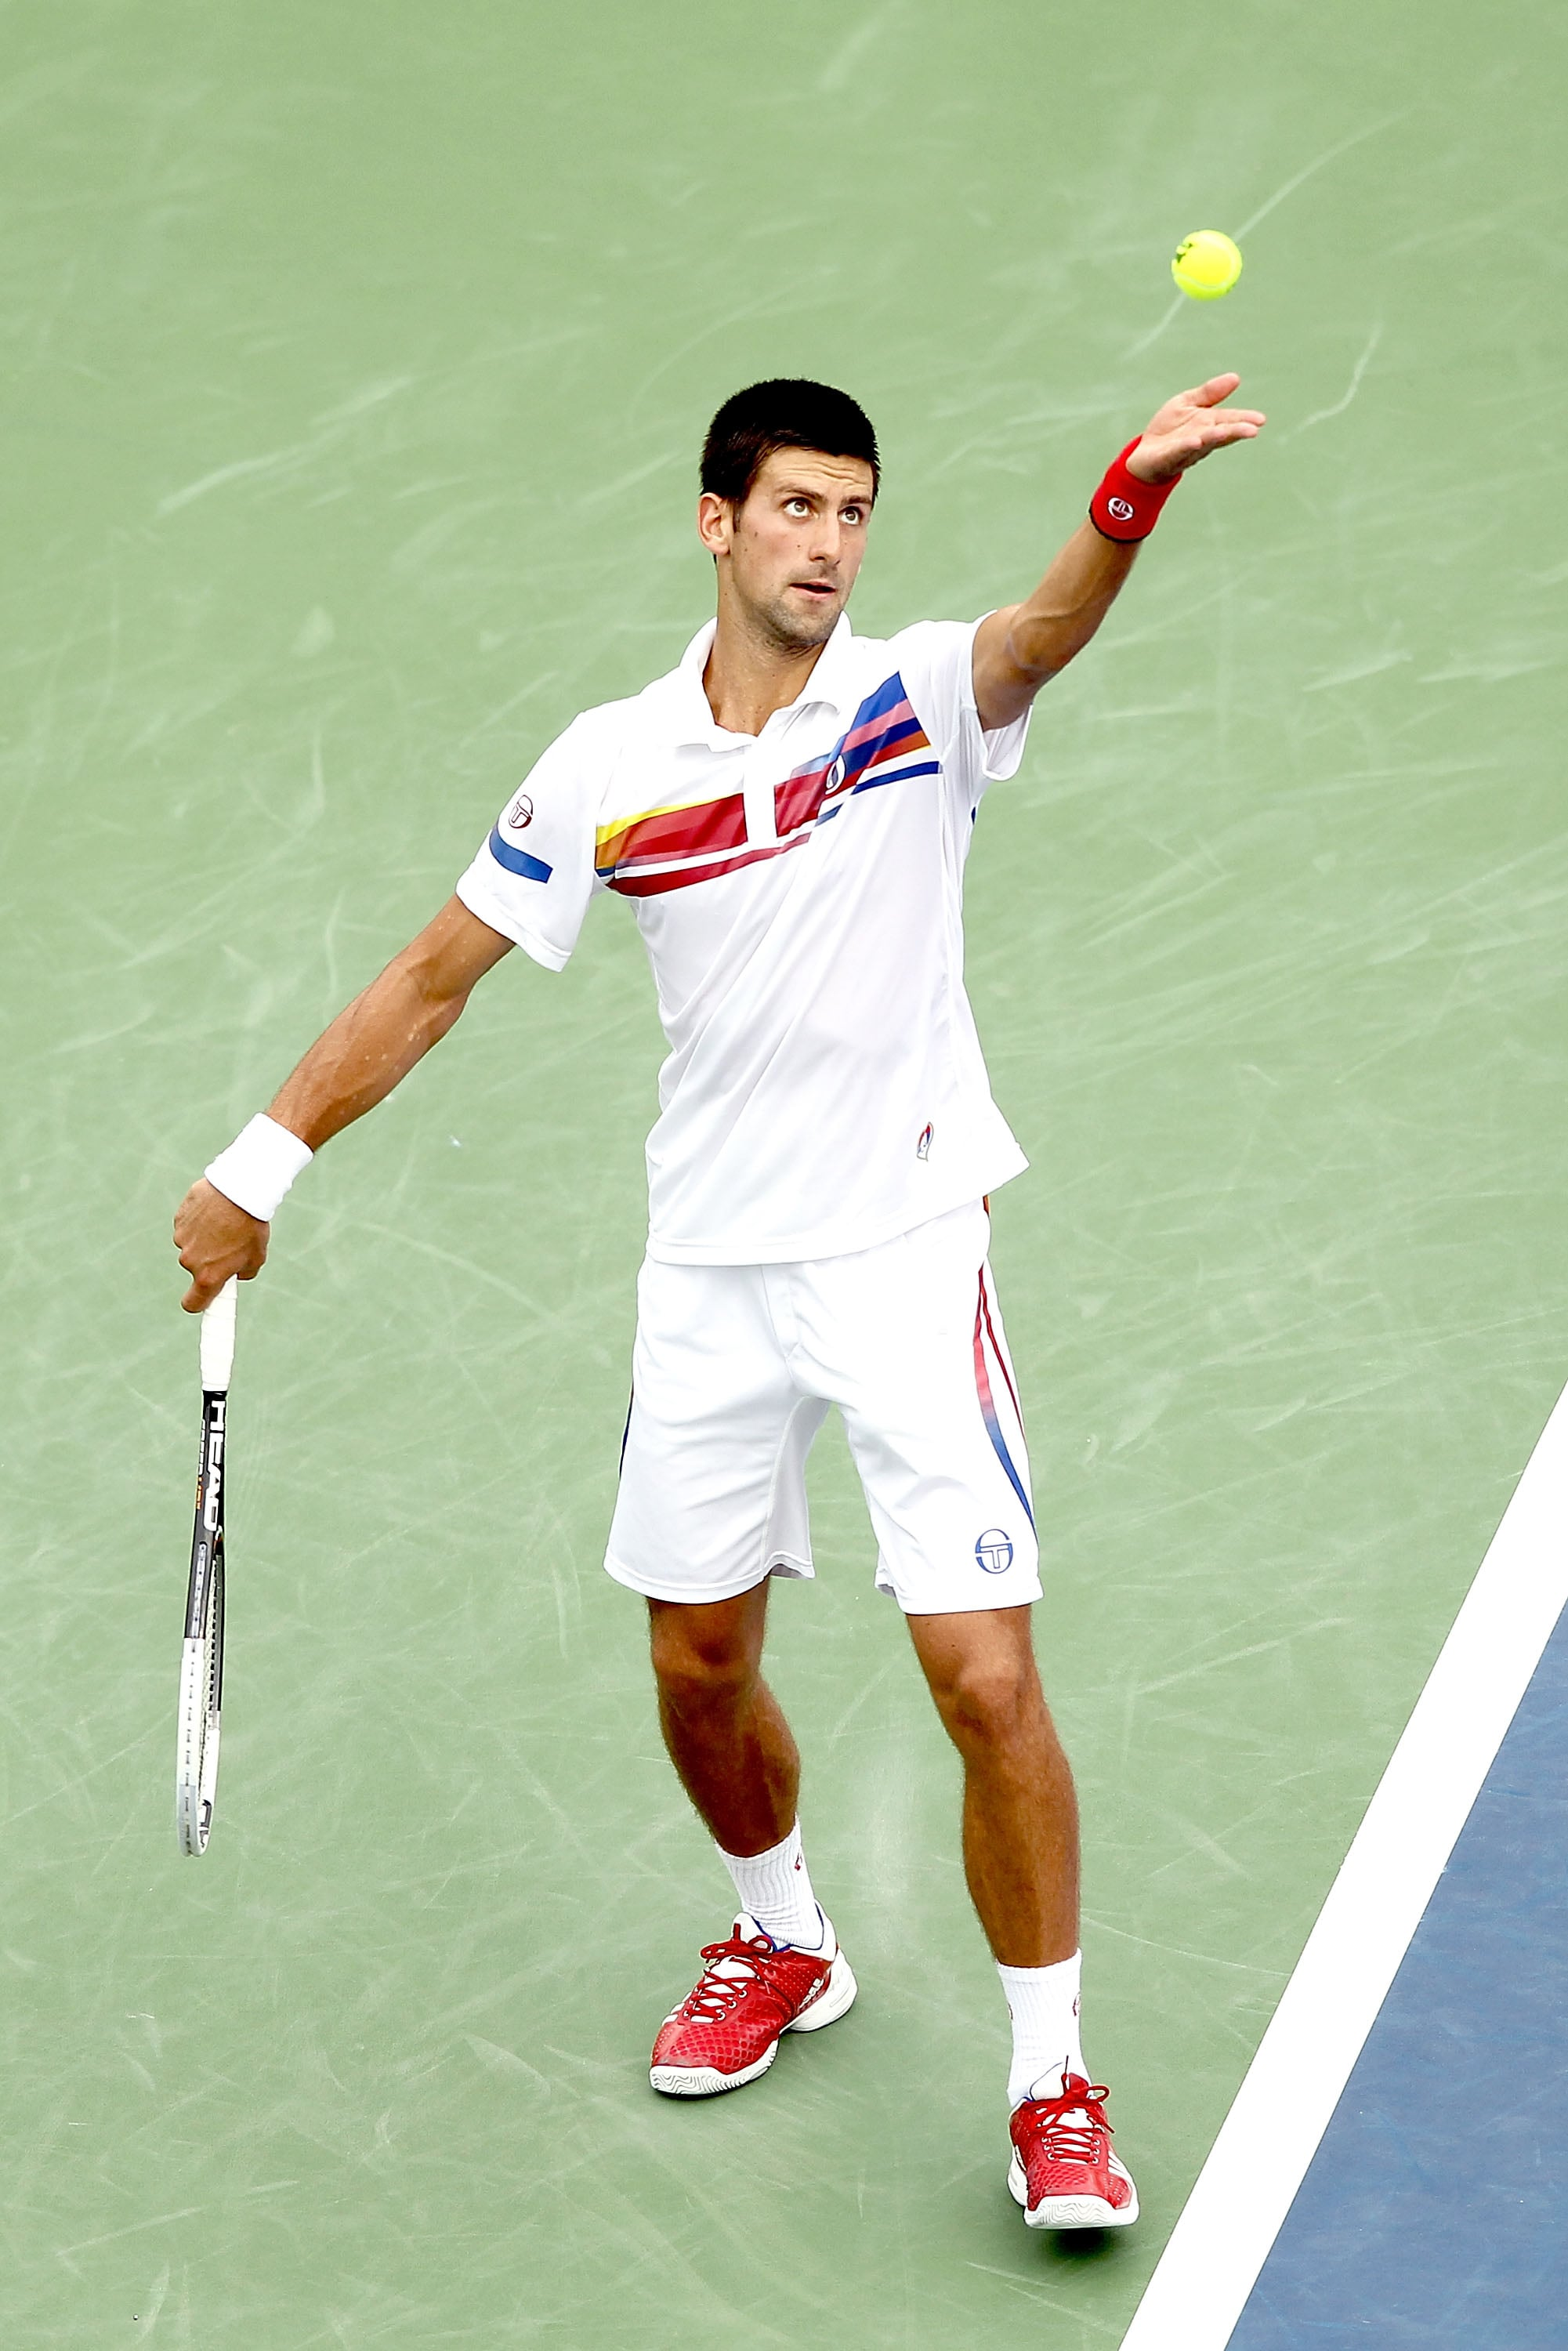 Novak Djokovic paired red tennis shoes with a cool striped shorts and polo shirt combo at the Western & Southern Open in Ohio in August 2011.